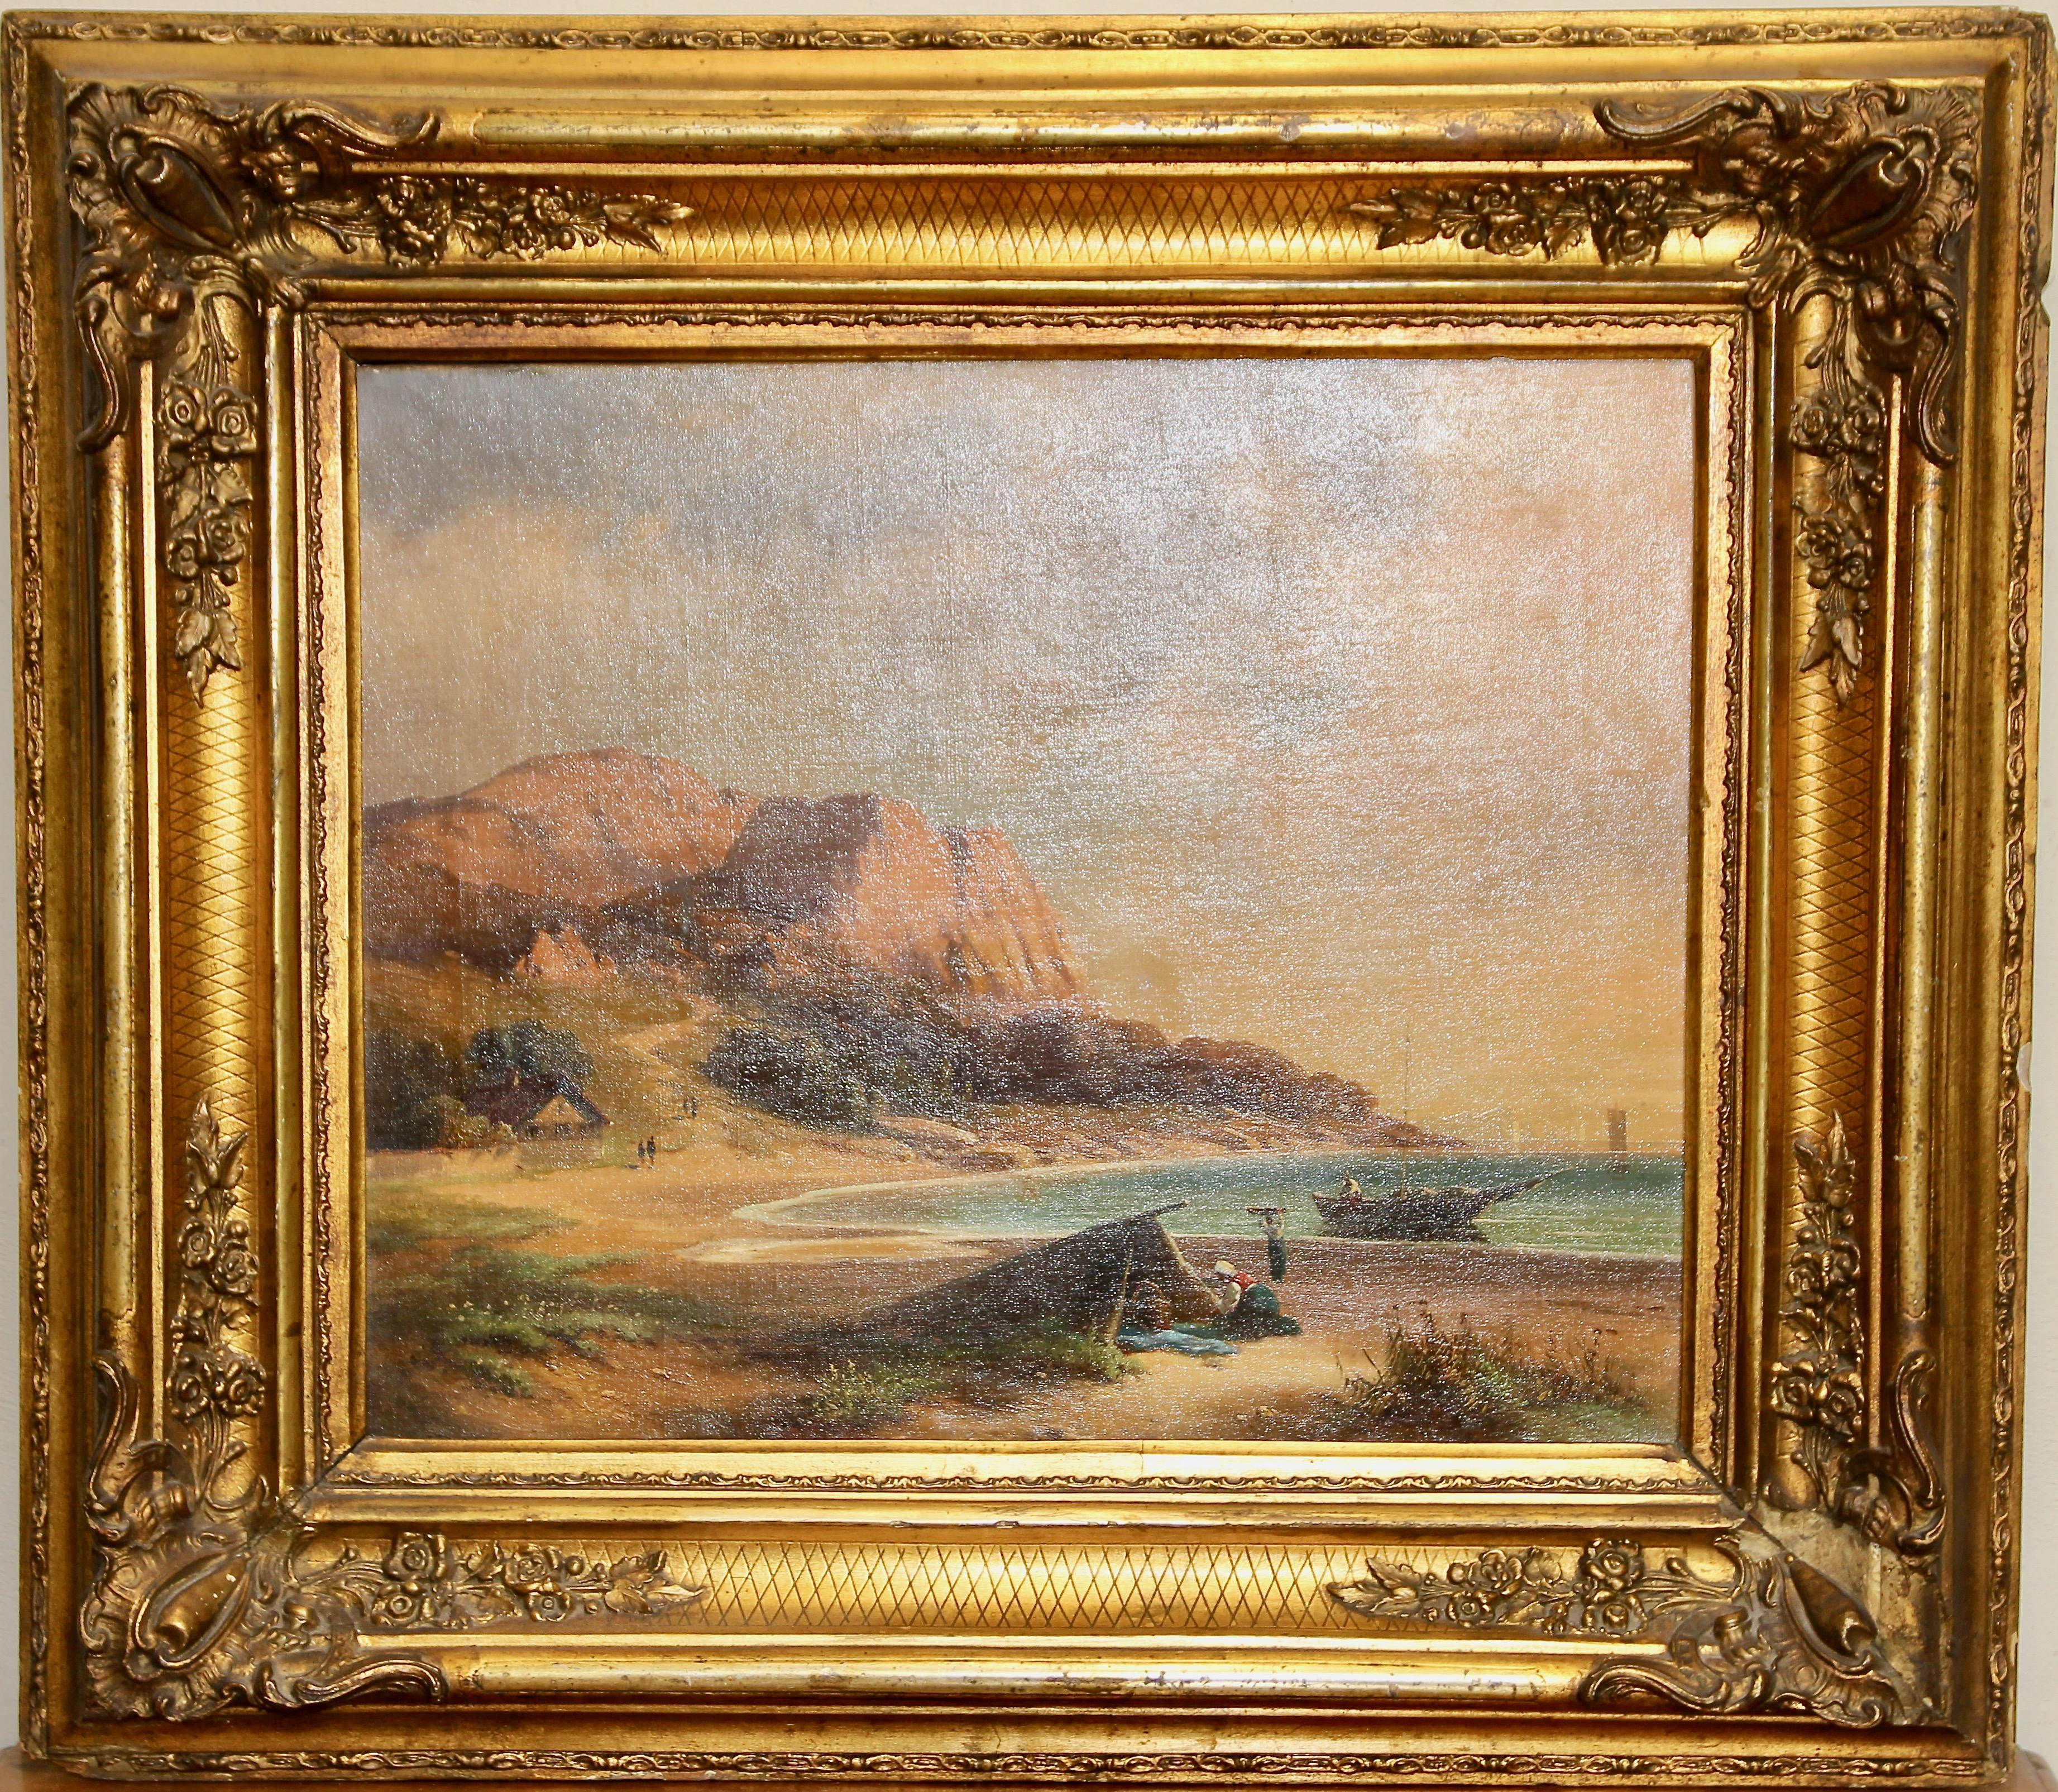 Antique painting, fisherman on the coast, oil on canvas.